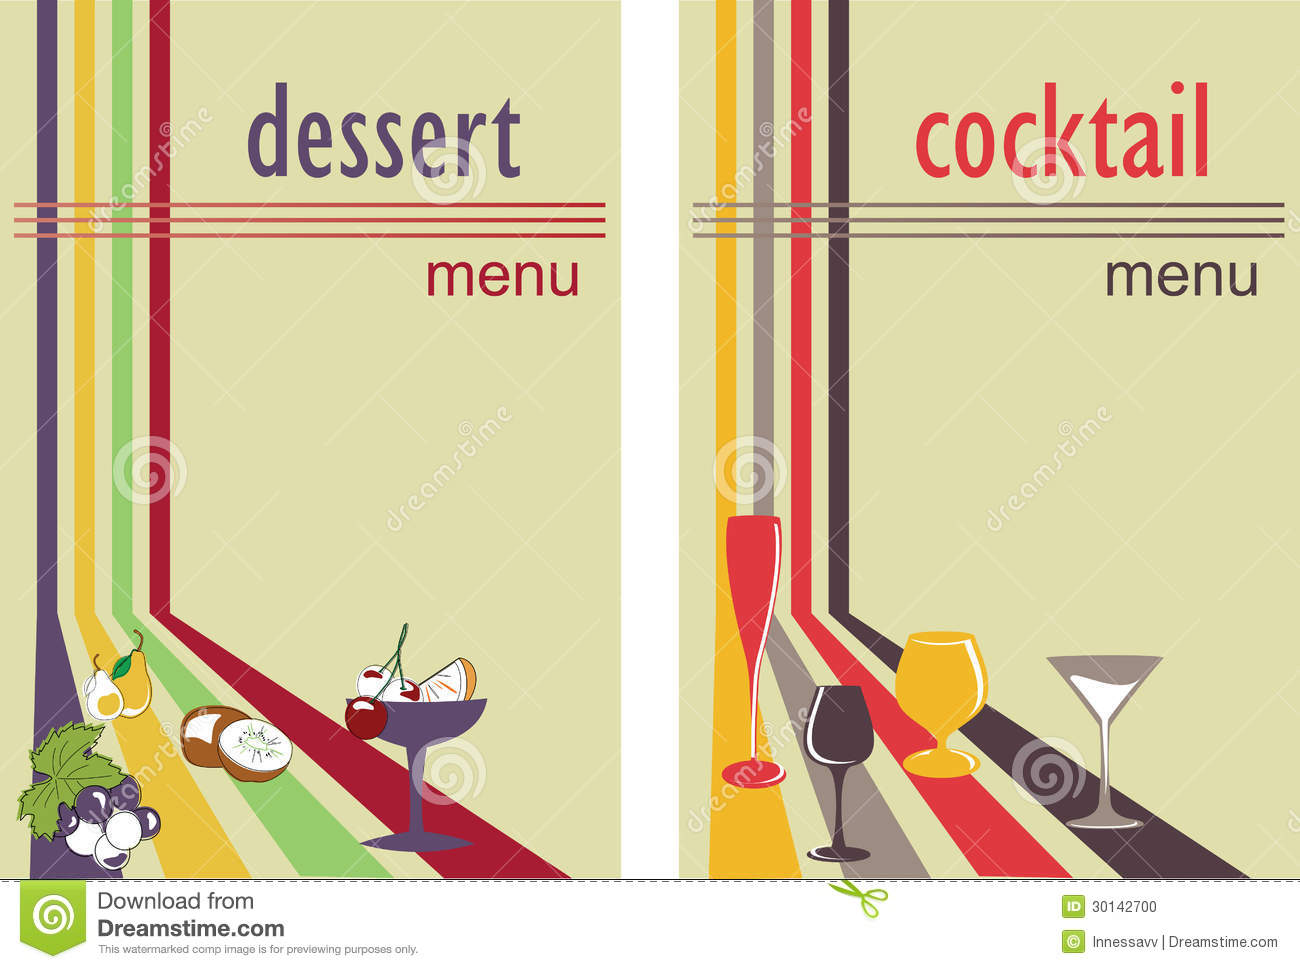 Dessert And Cocktail Menu Stock Photo - Image: 30142700